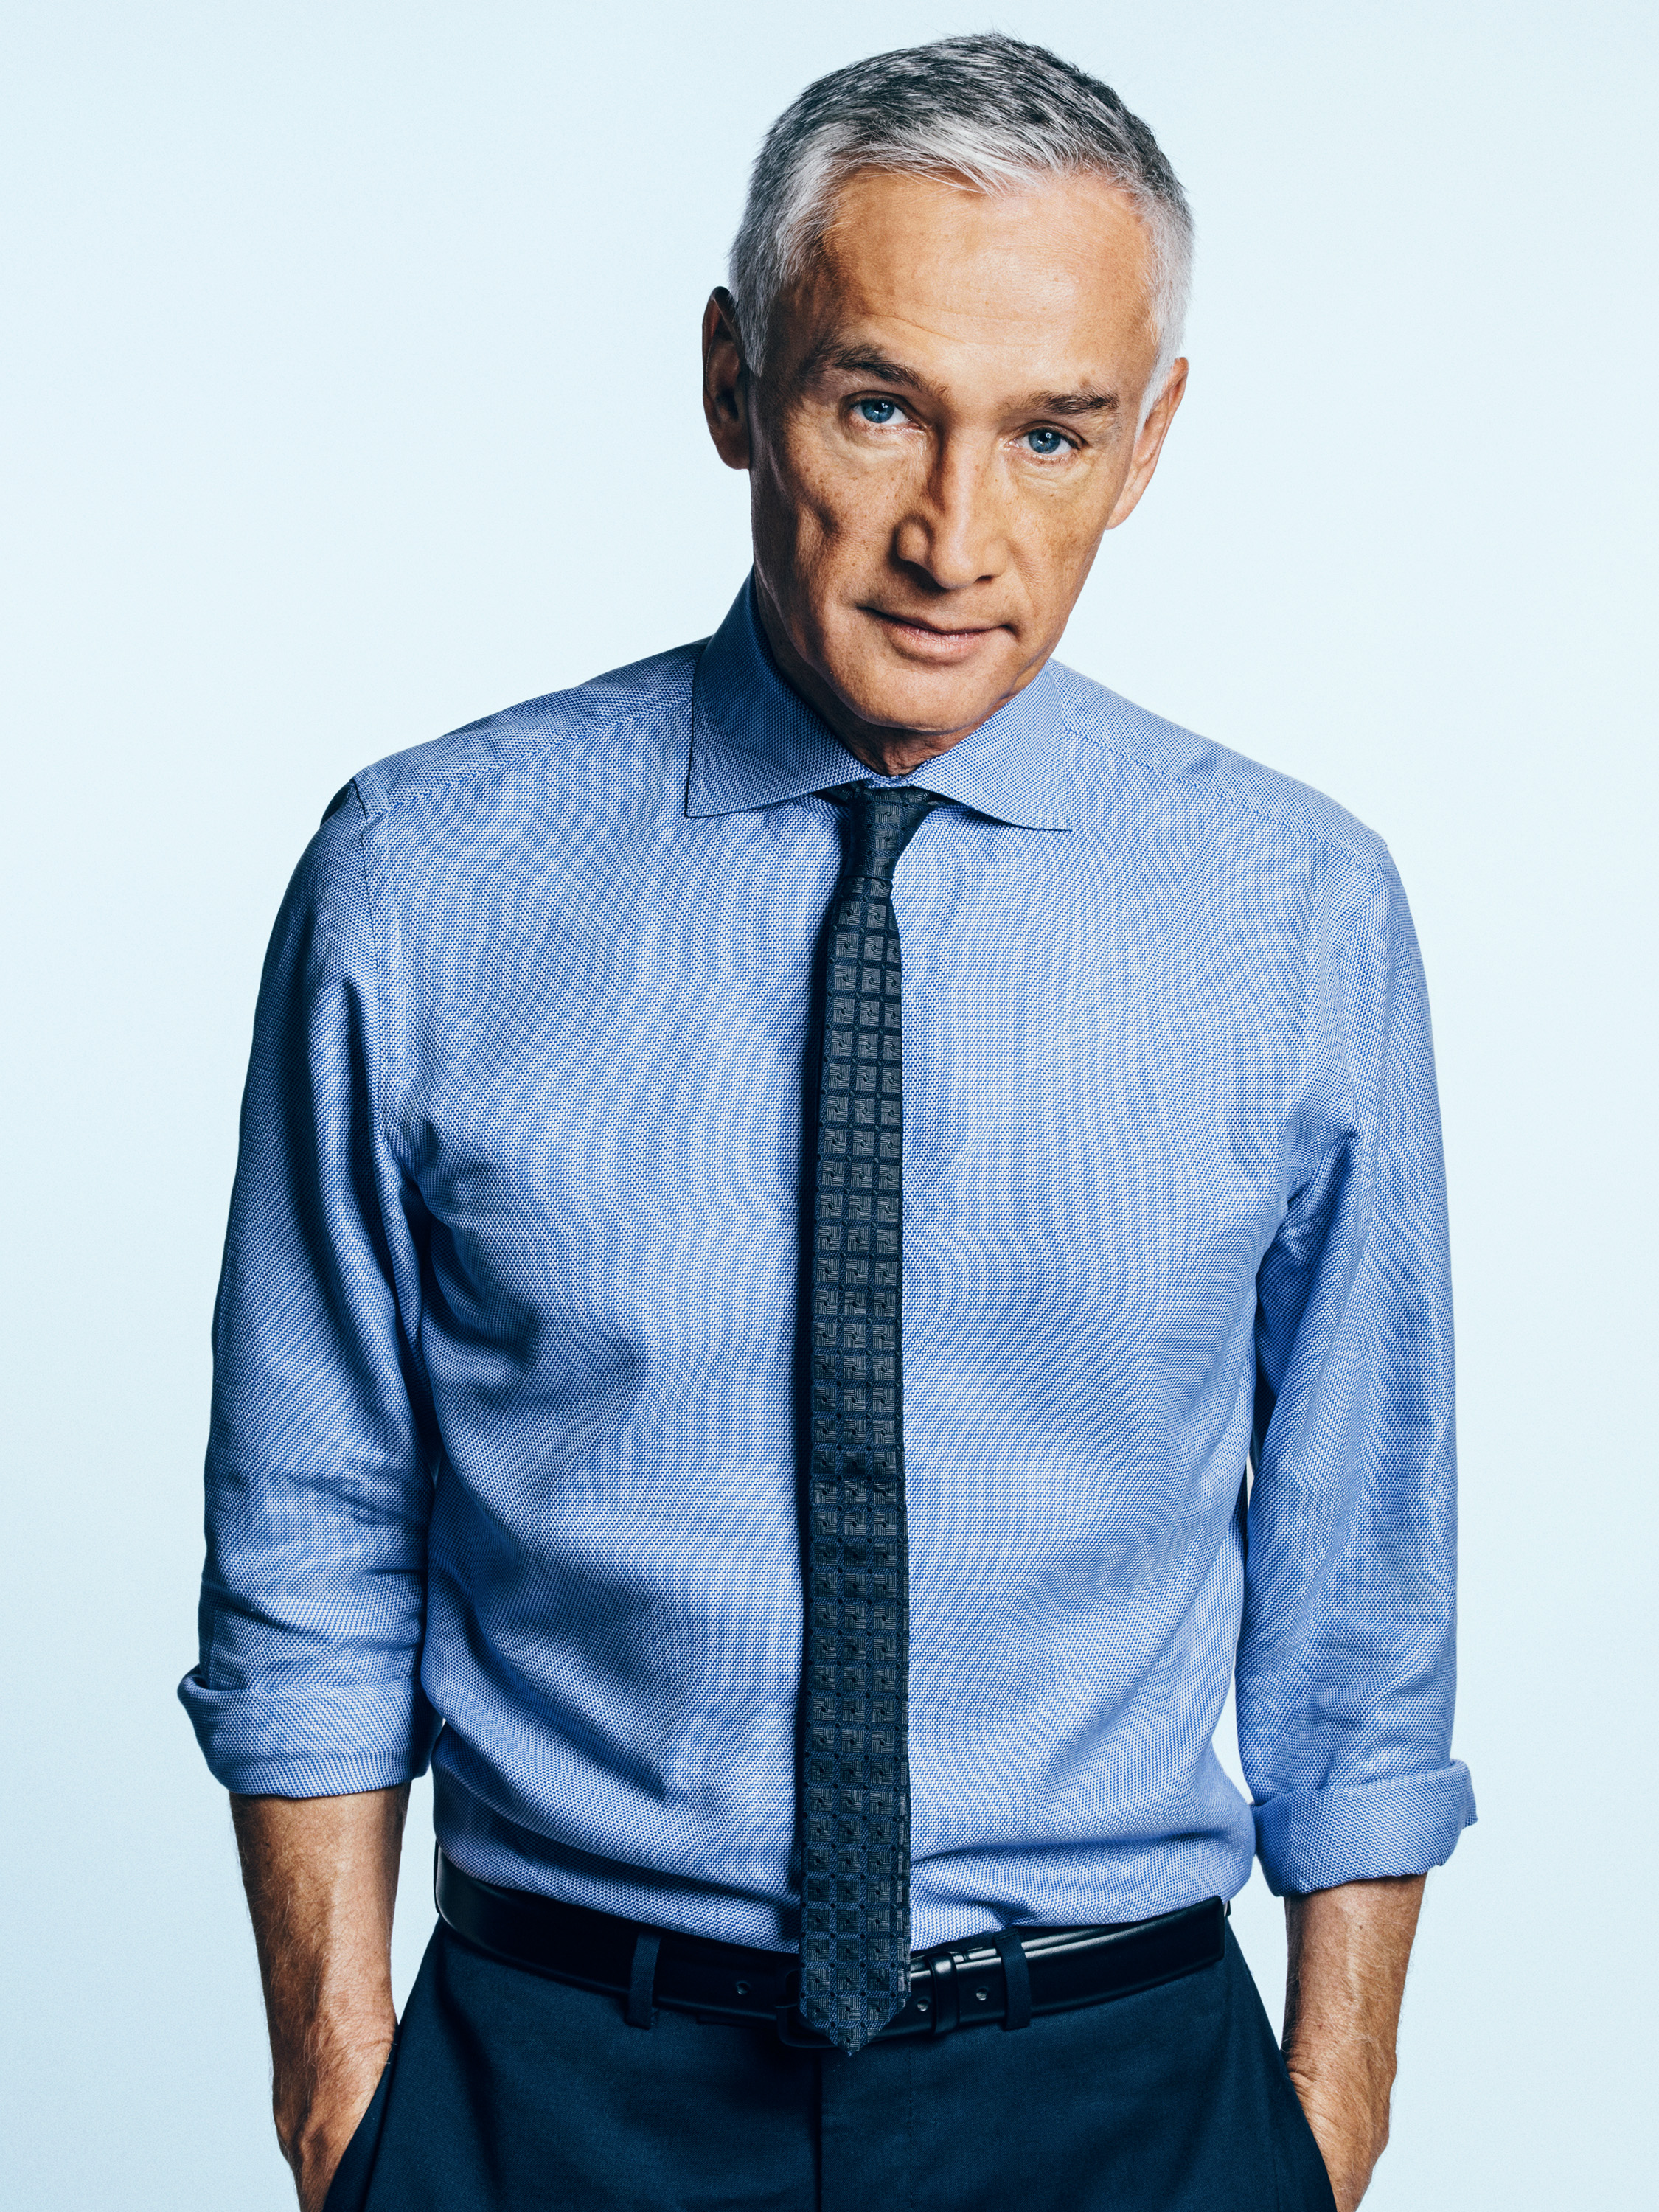 Portrait of Mexican- American journalist and author Jorge Ramos photographed on Thursday, March 19, 2015 in Doral, Florida.